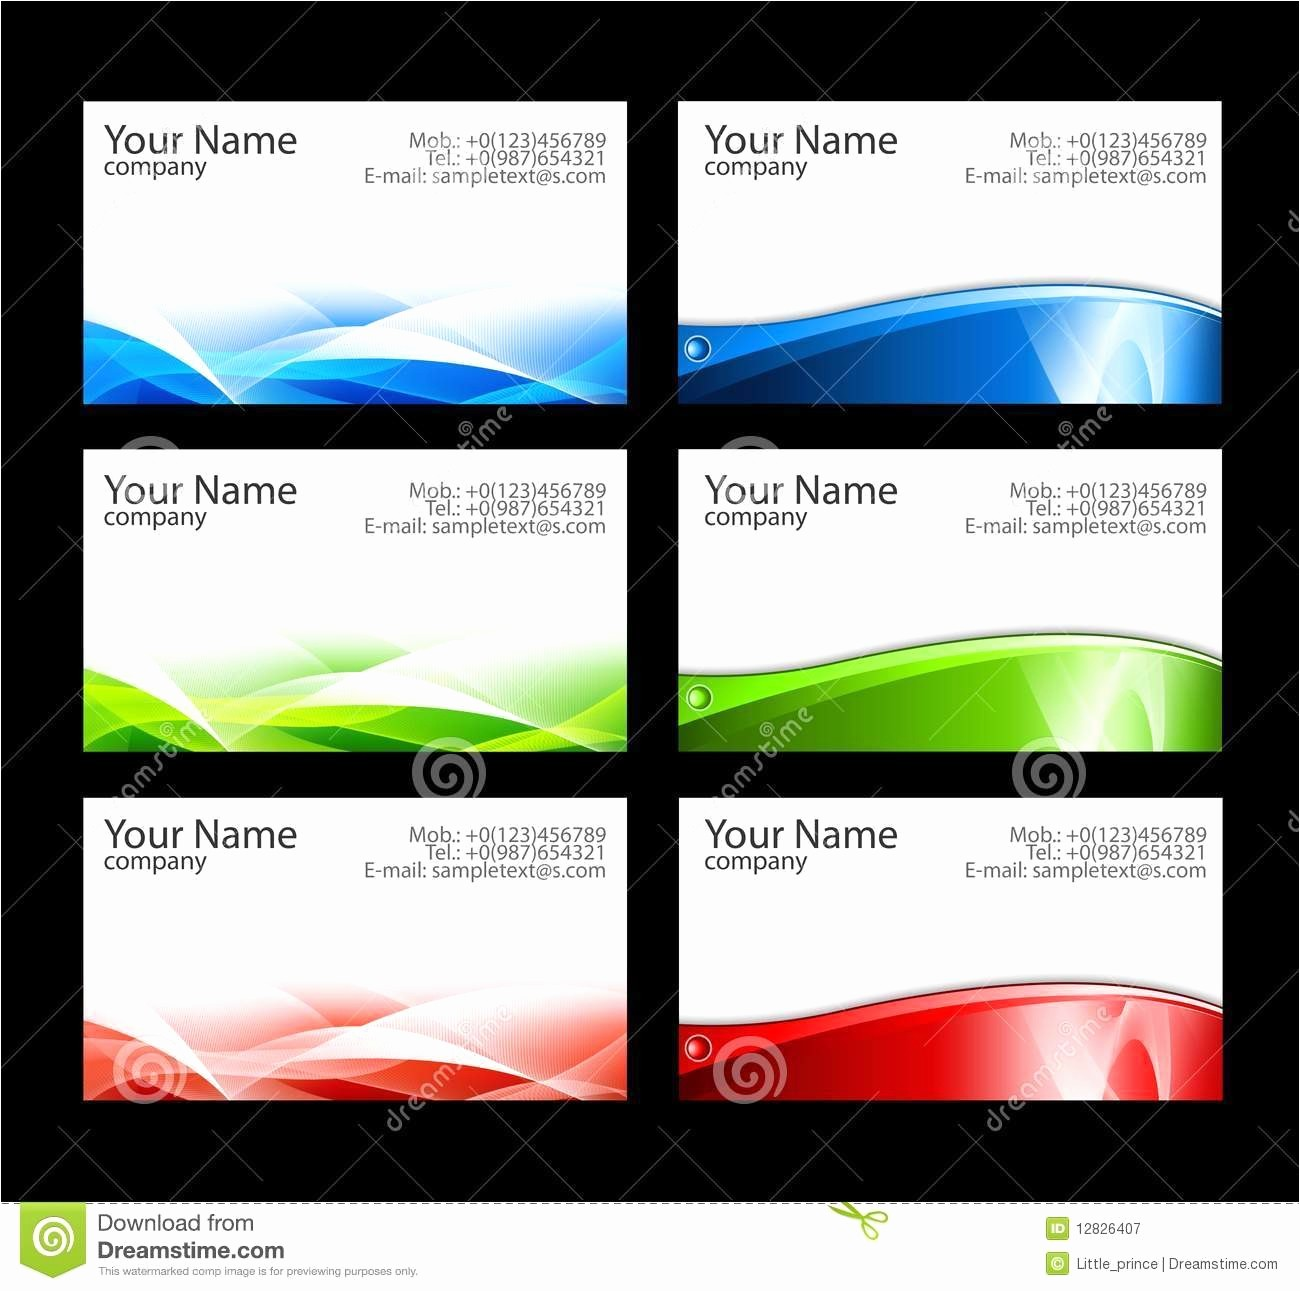 Microsoft Business Card Template Free Fresh Microsoft Business Cards Templates Free Download Free